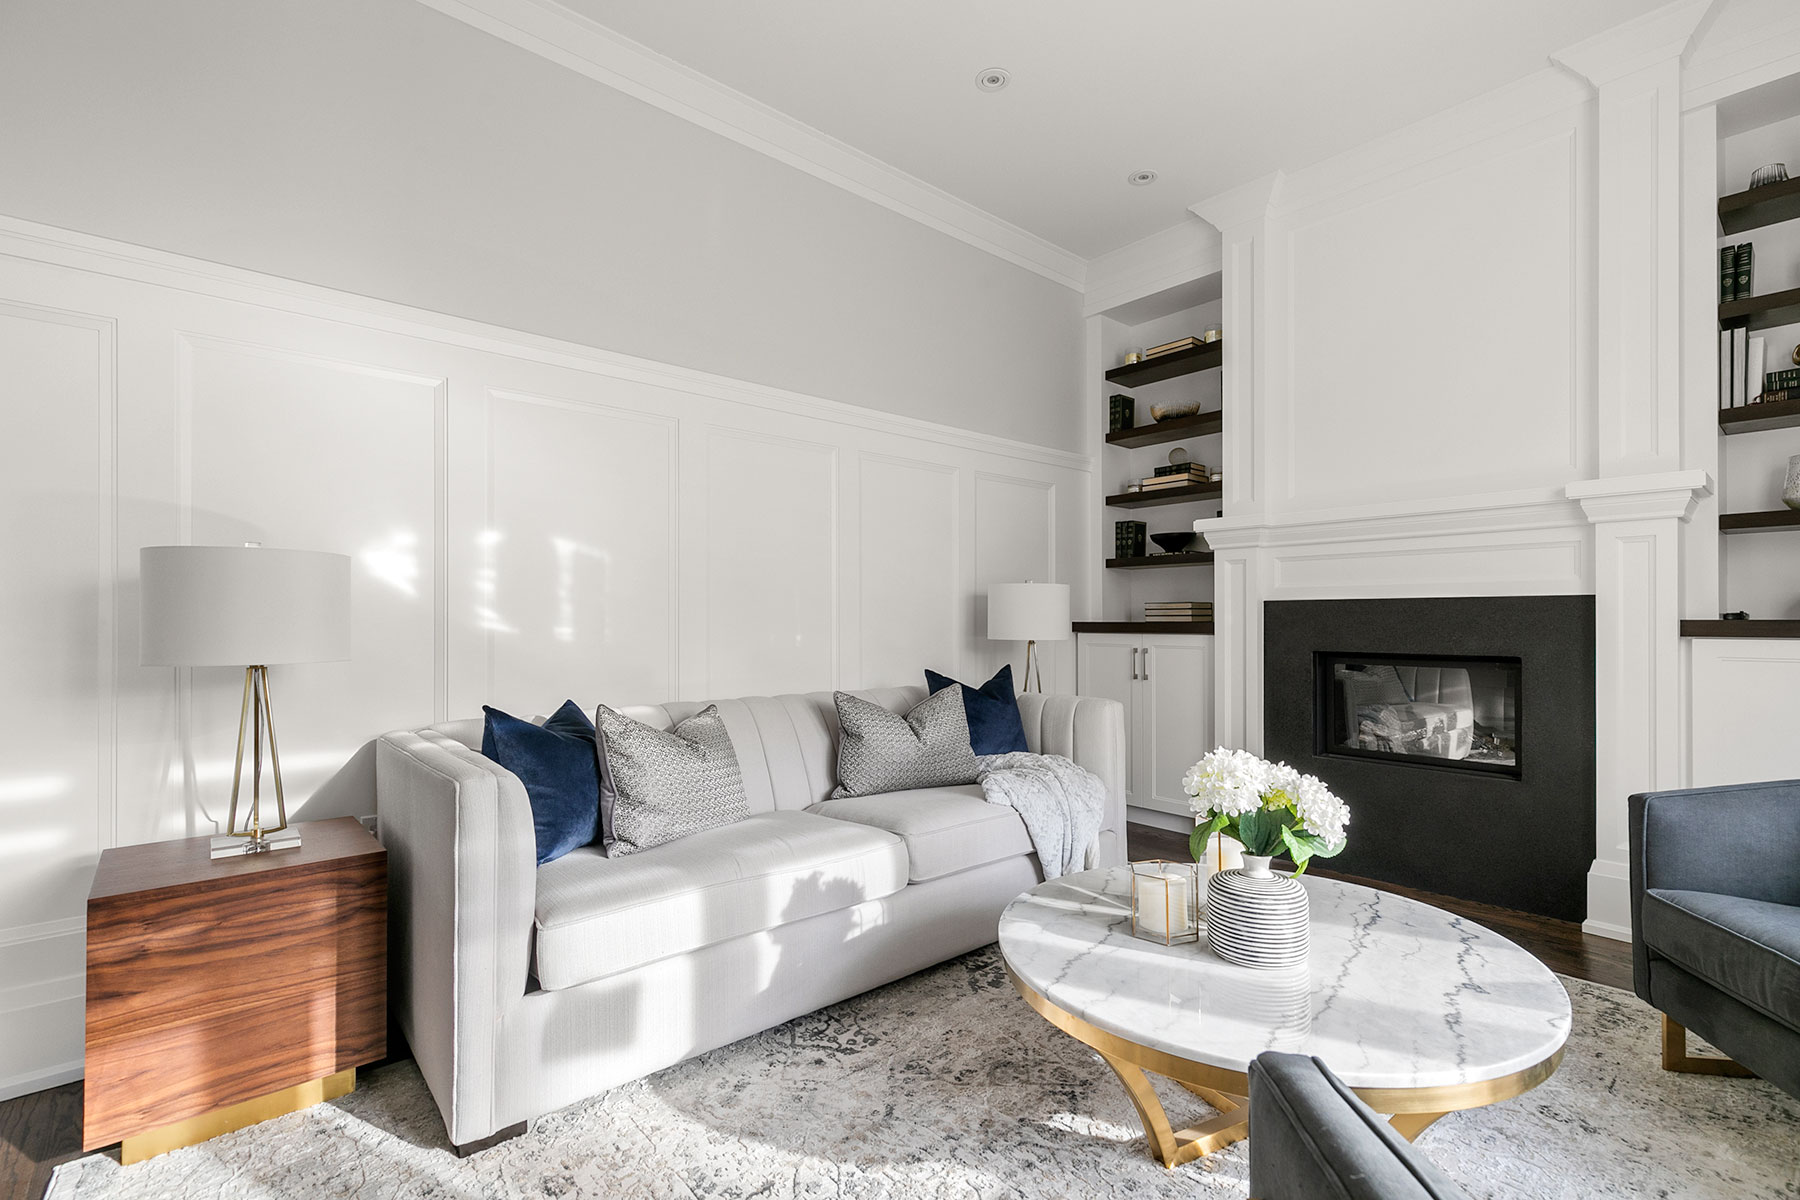 For this family room design, we chose a sectional with durable fabric and added extra seating with the leather ottoman and swivel chairs